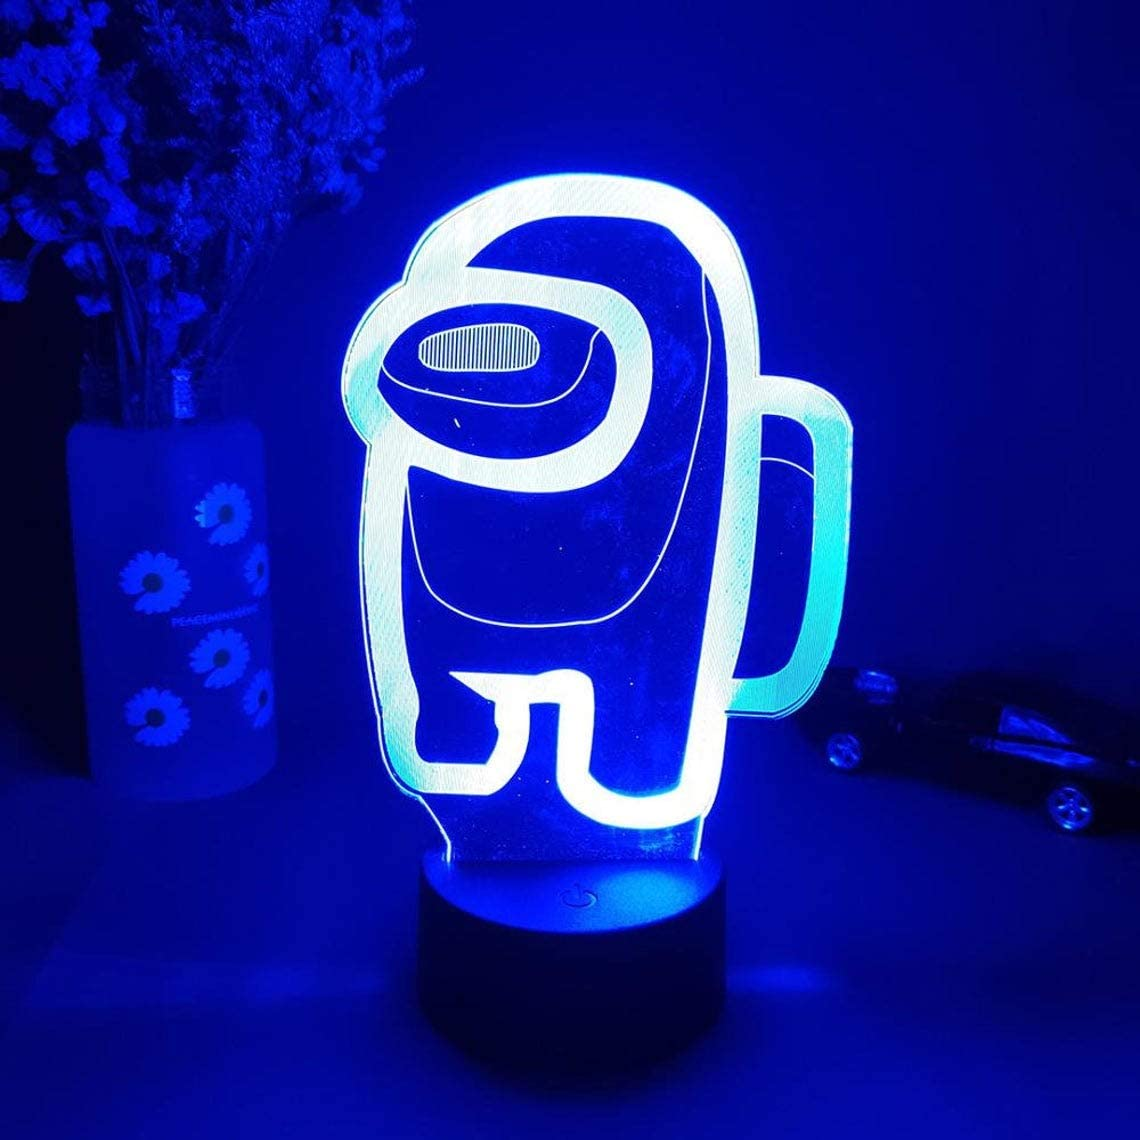 Among Night Light Game Table Lamp 3D Illusion USB Powered 7 Colors LED Lights with Touch Switch for Kids Gifts Bedroom Decoration-Free shipping